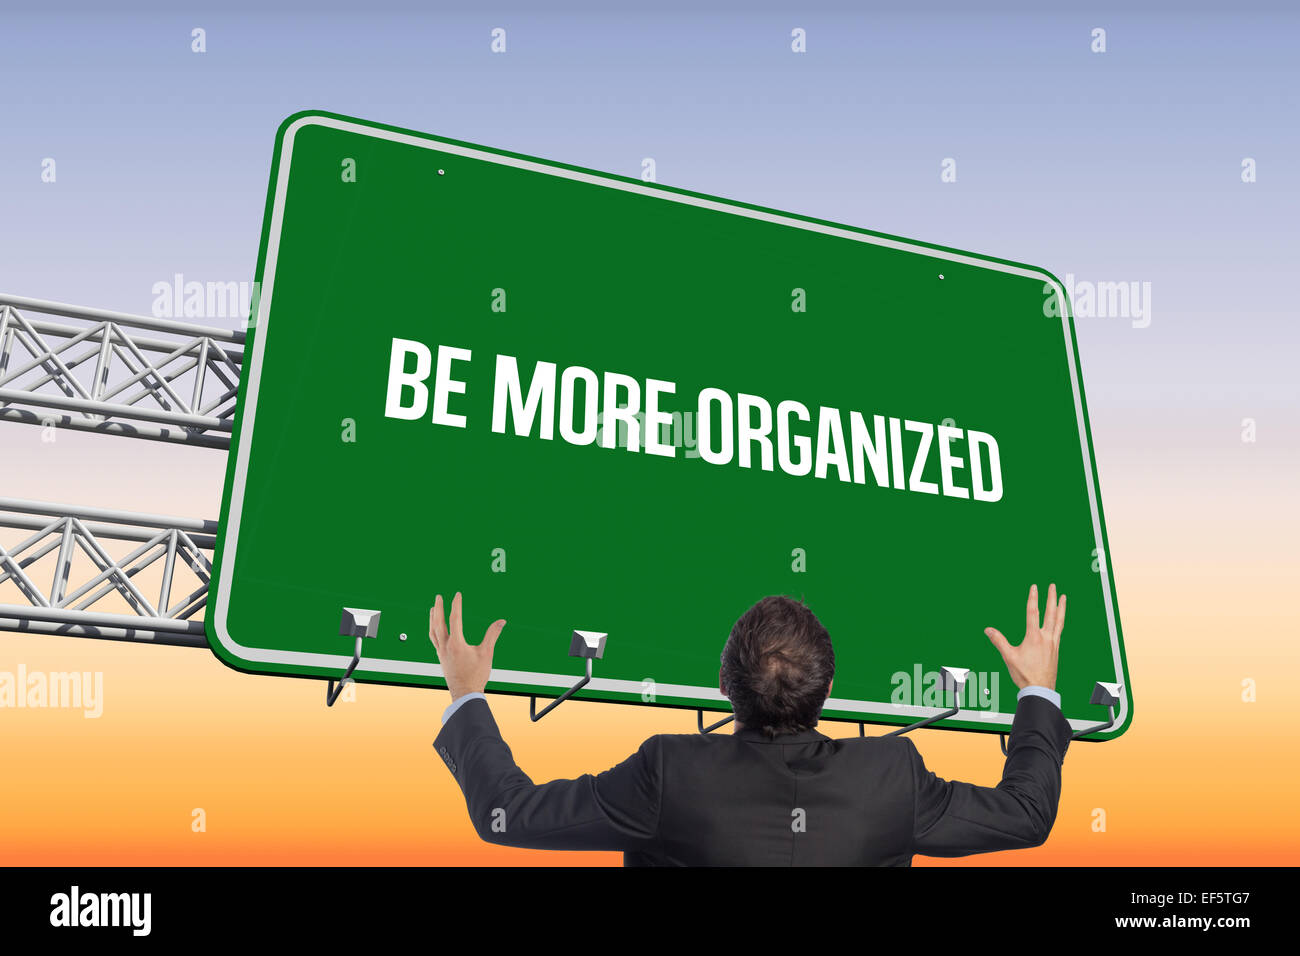 Be more organized against purple and orange sky - Stock Image